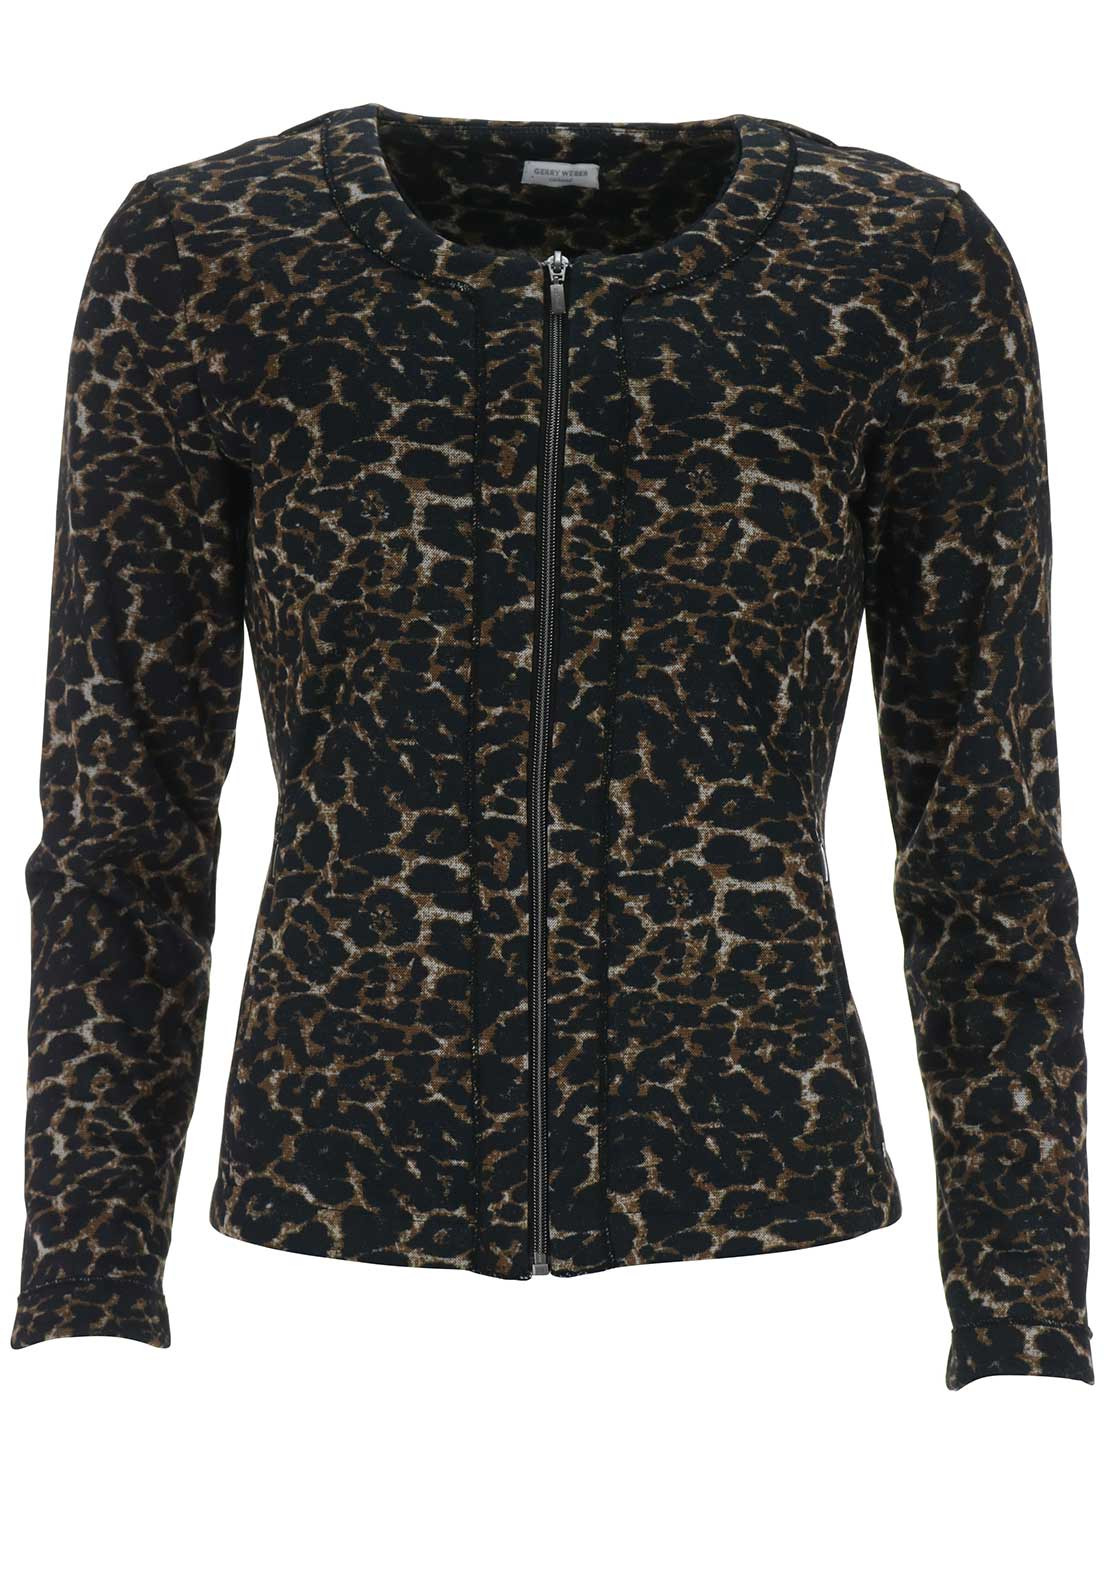 Gerry Weber Animal Print Jacket, Black Multi